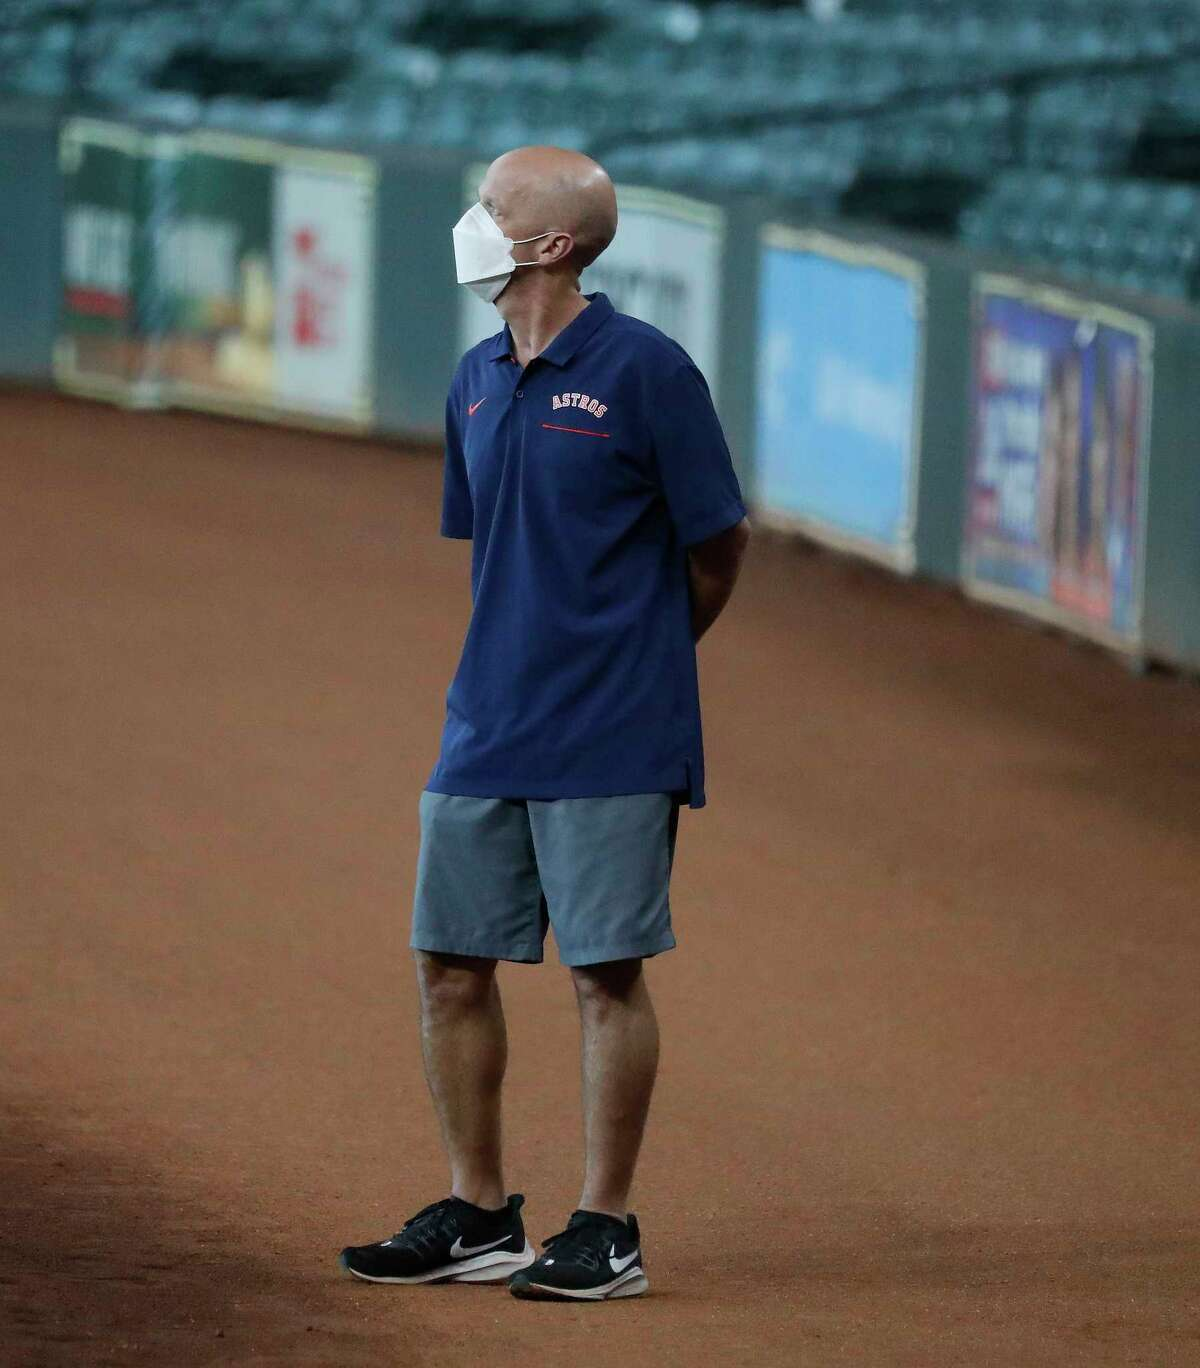 Houston Astros clubhouse manager Carl Schneider watches during the Astros summer camp at Minute Maid Park, Friday, July 17, 2020, in Houston.